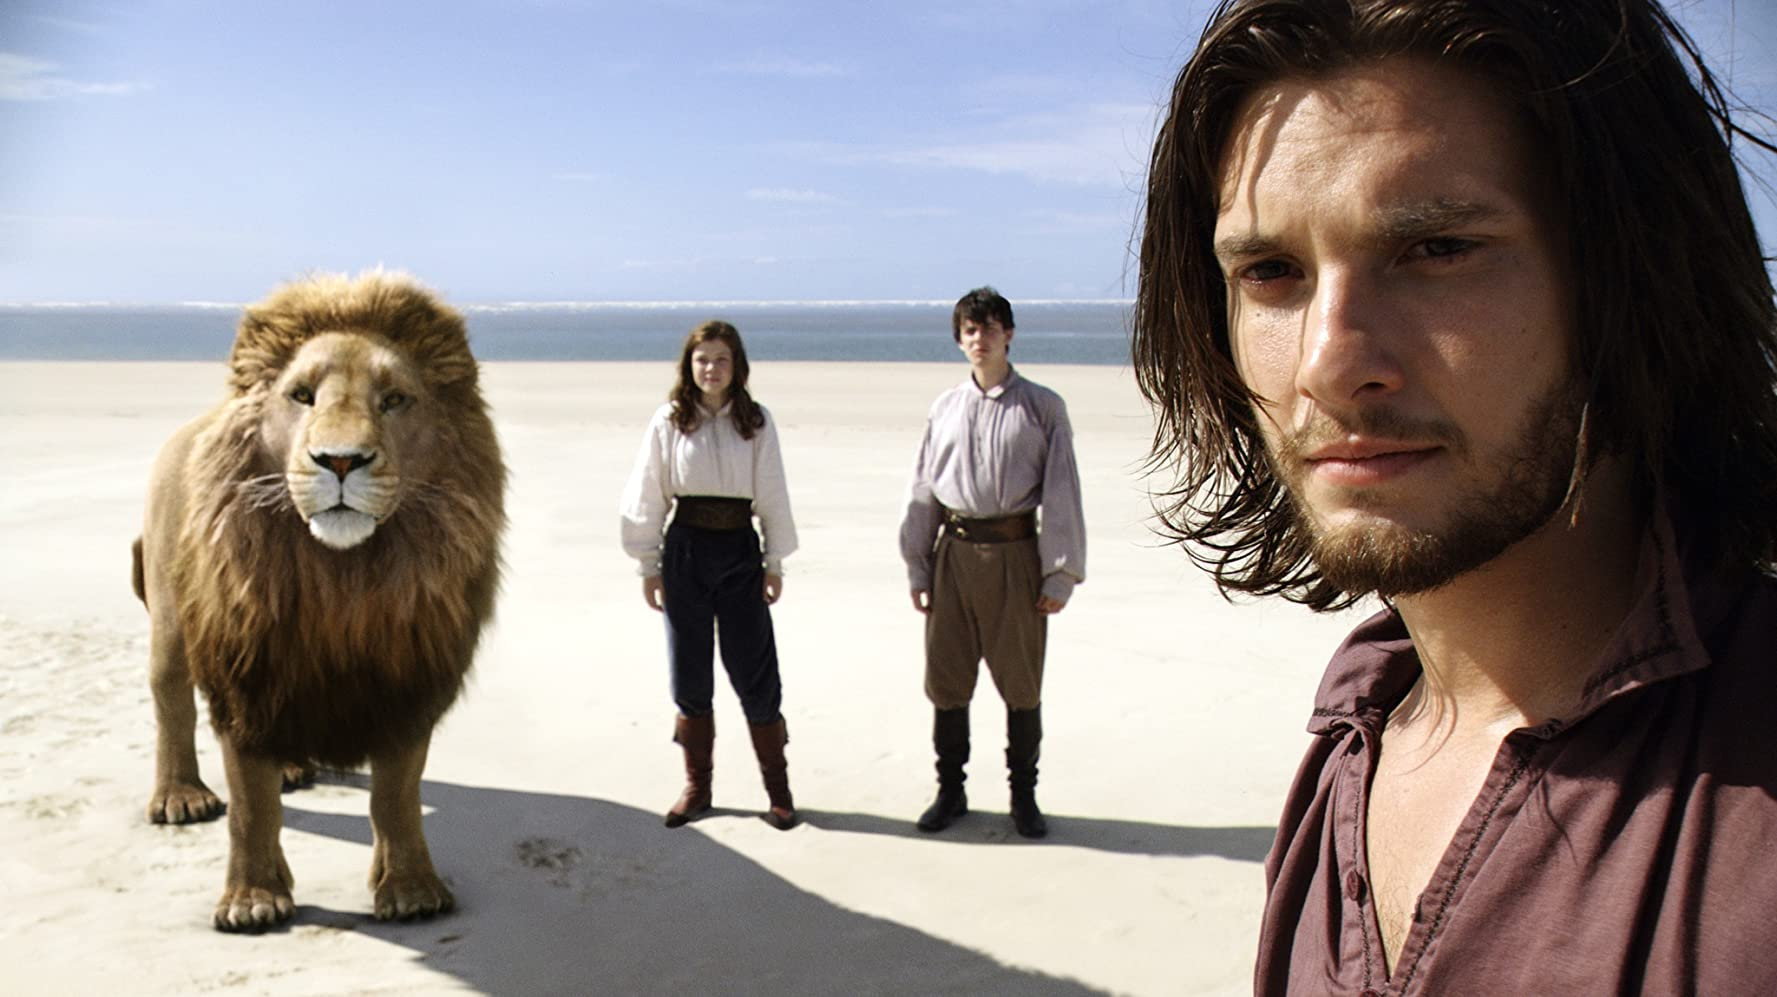 Skandar Keynes, Ben Barnes, and Georgie Henley in The Chronicles of Narnia: The Voyage of the Dawn Treader (2010)